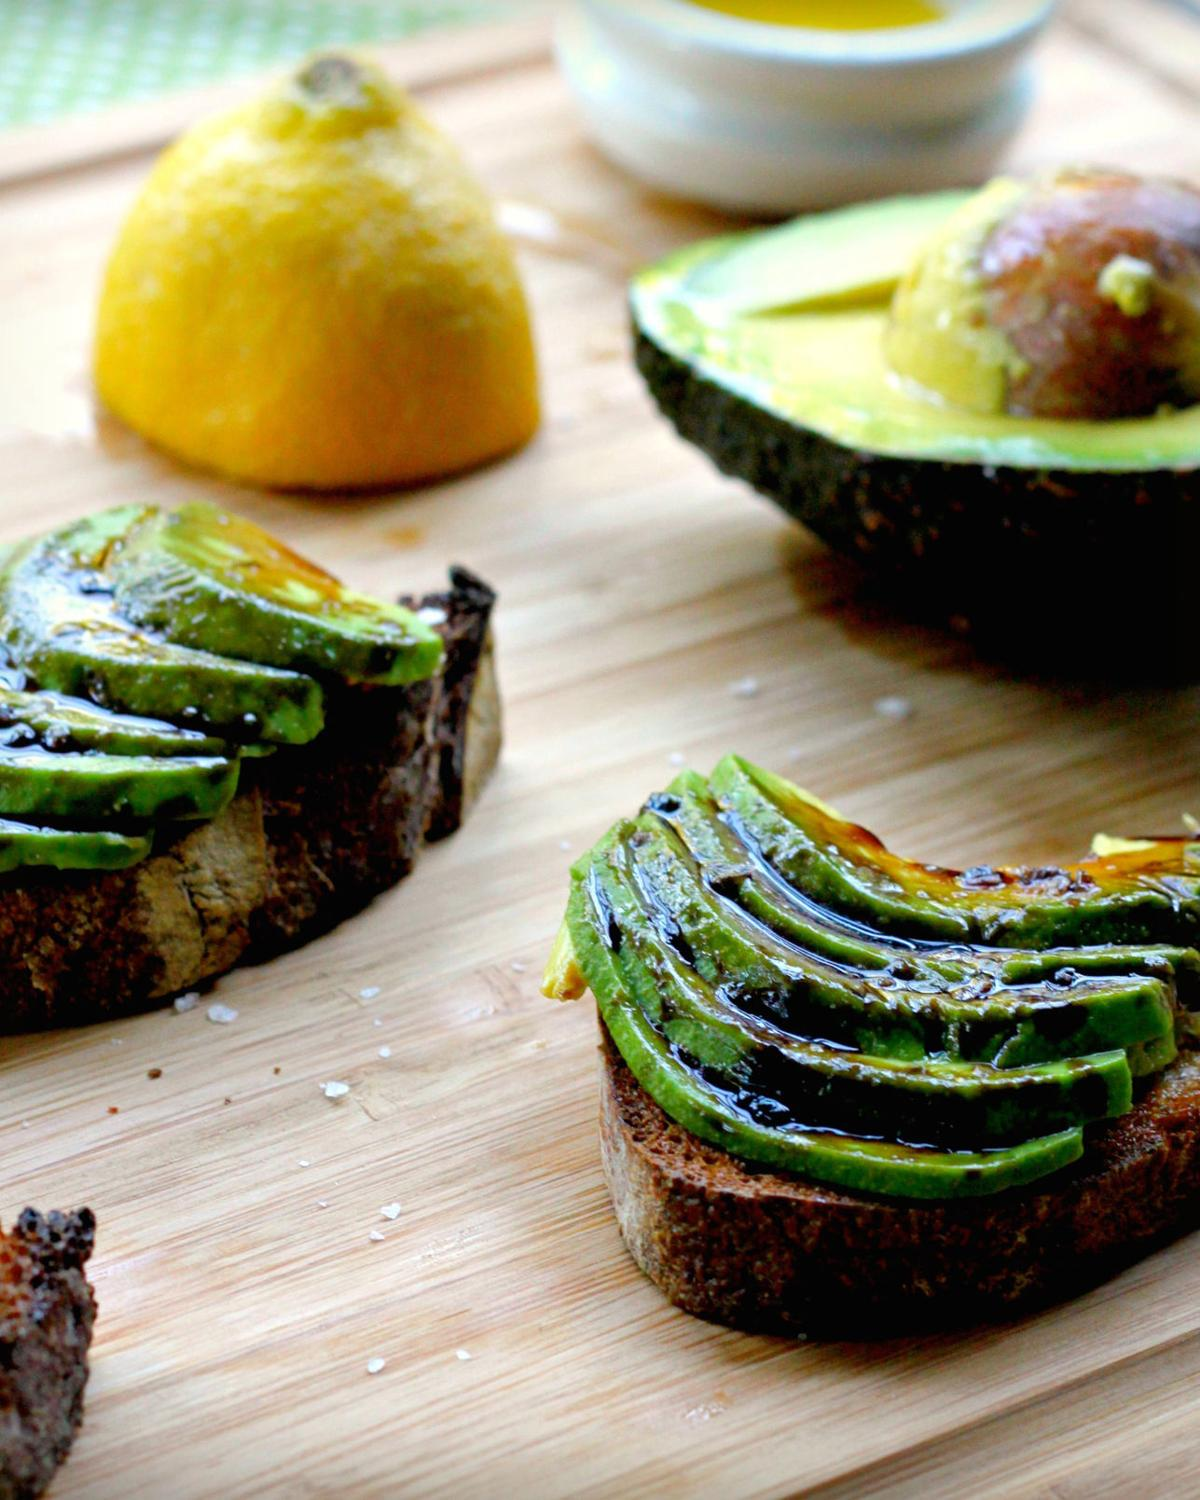 Avocado Toast With Balsamic Reduction